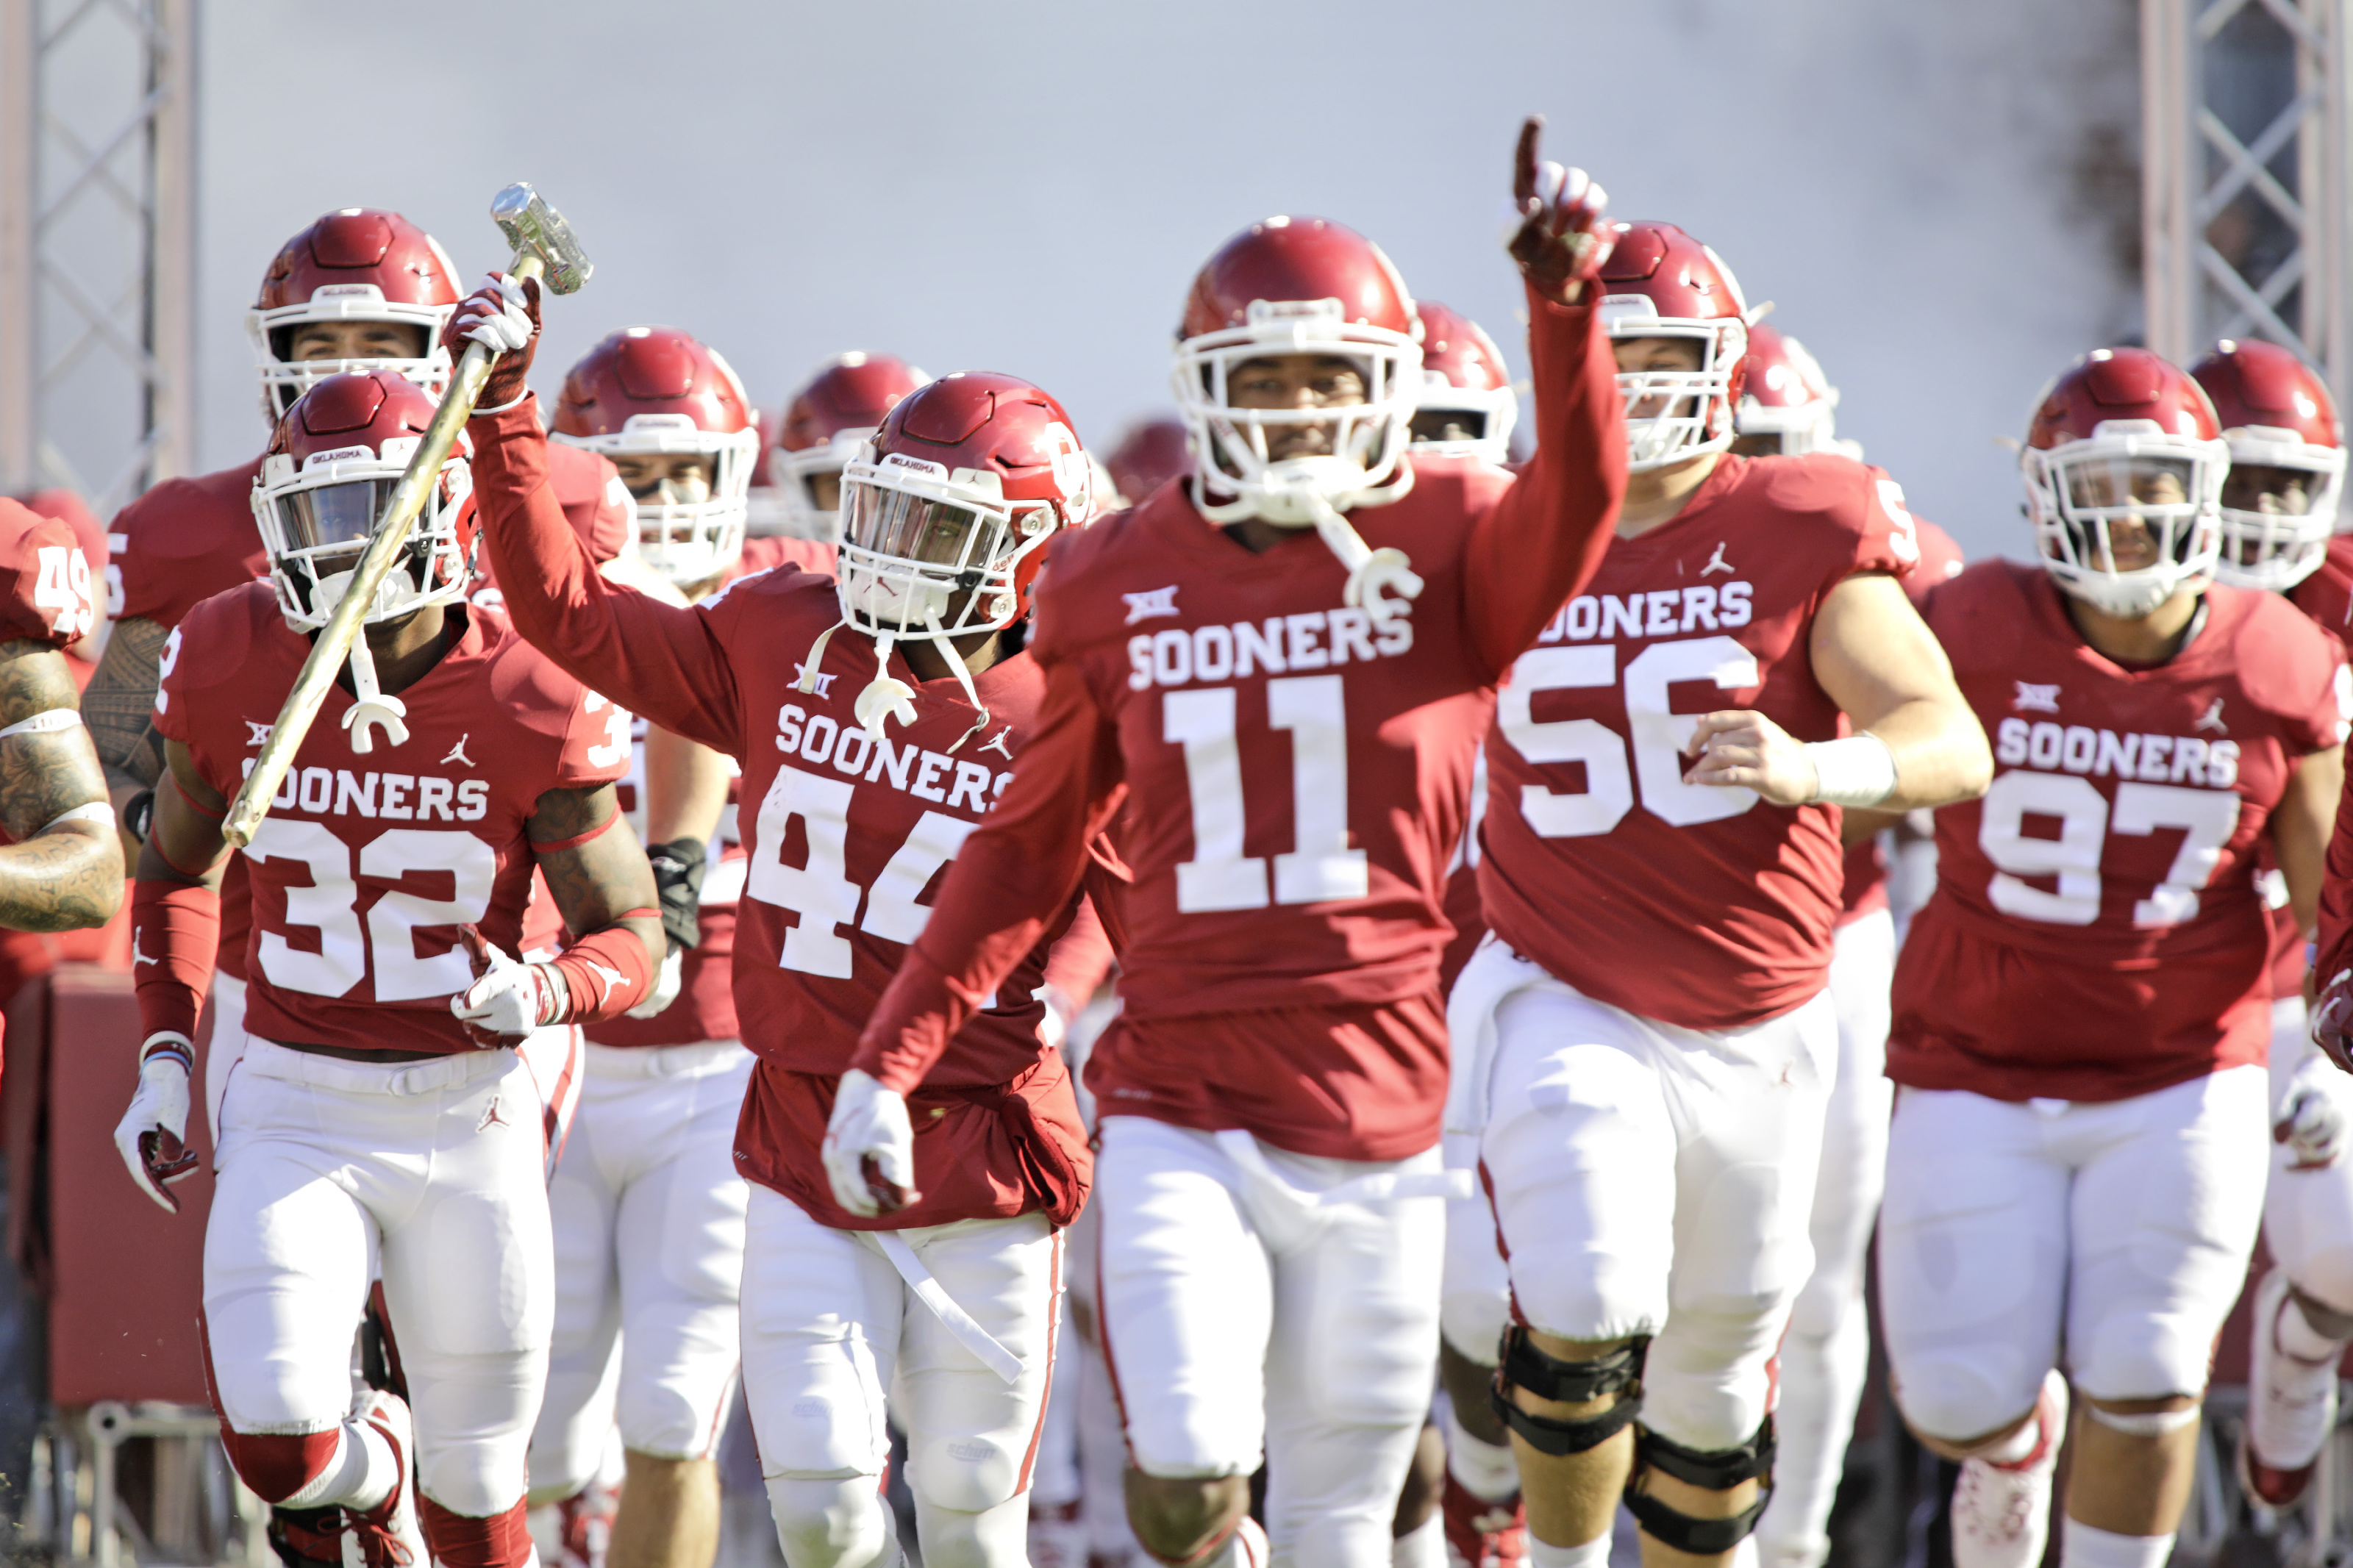 Oklahoma Football Sooners No Strangers To Top 5 Season Starts